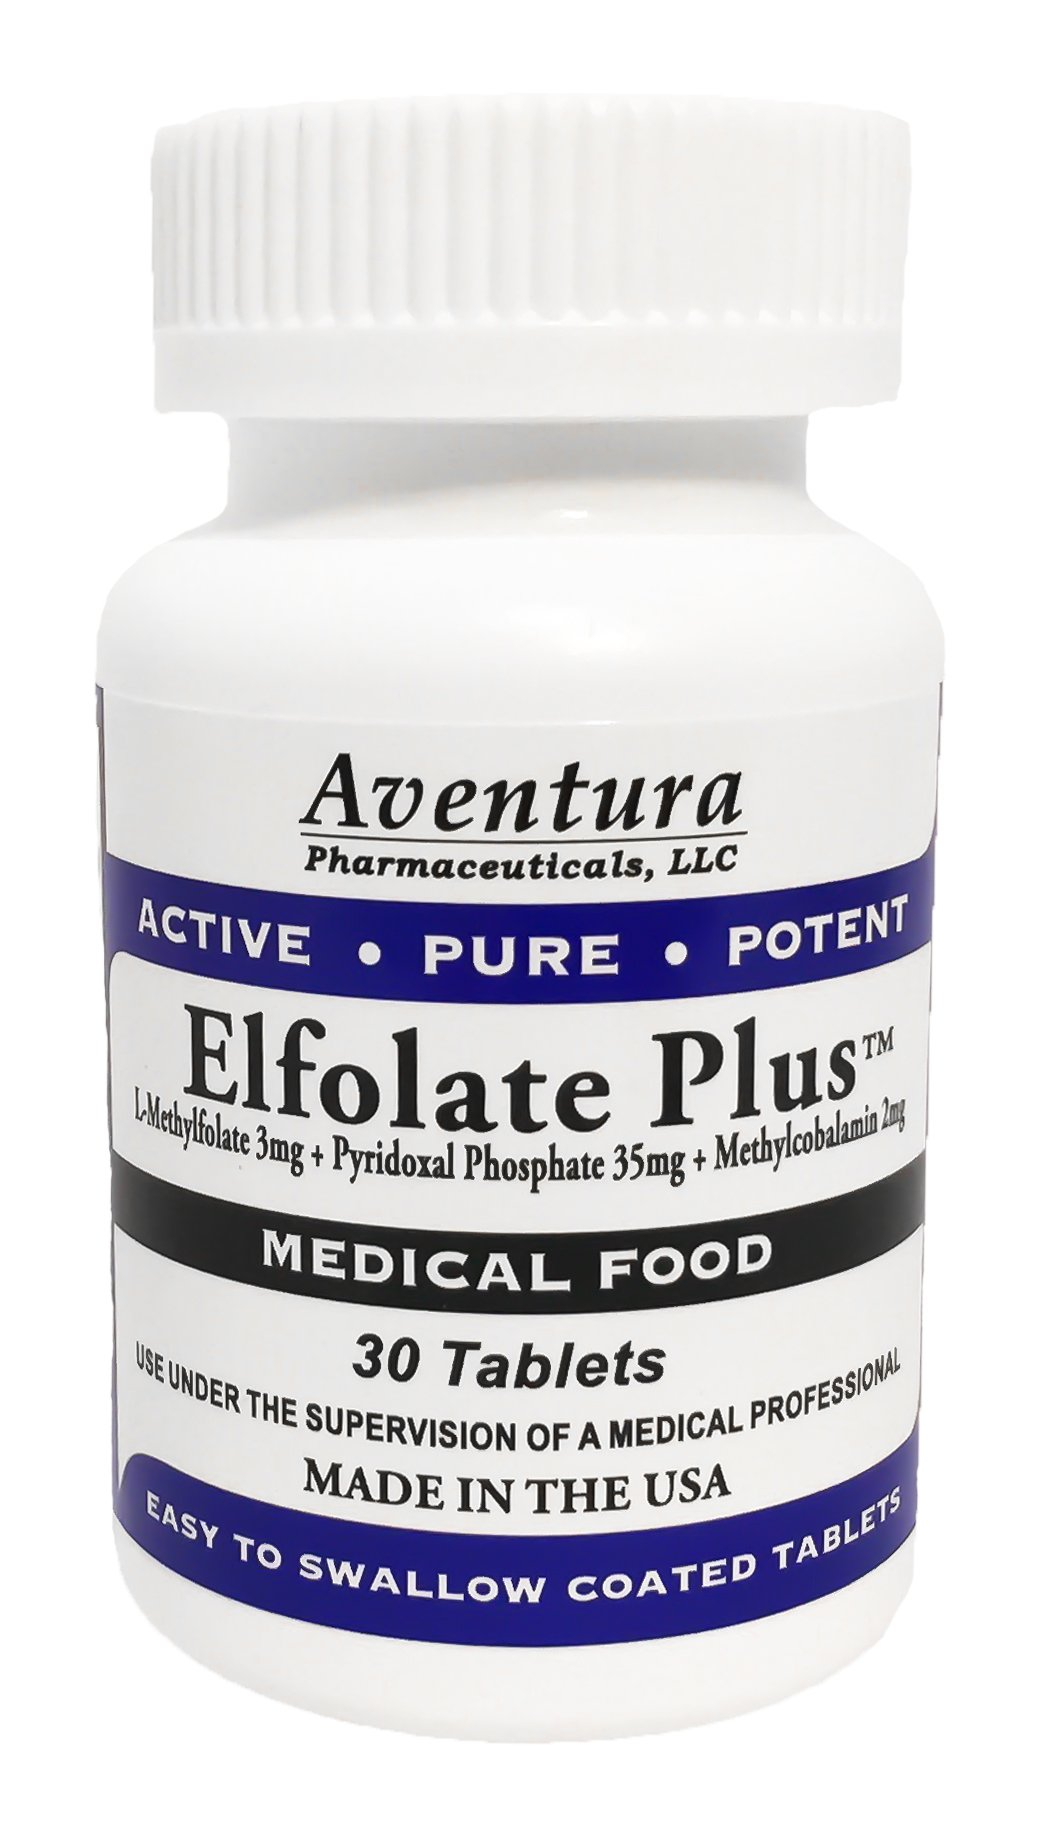 Elfolate Plus™ 3mg L-Methylfolate Medical Food Supplement Professional Strength Active Pure Potent Folate 30 Tablets